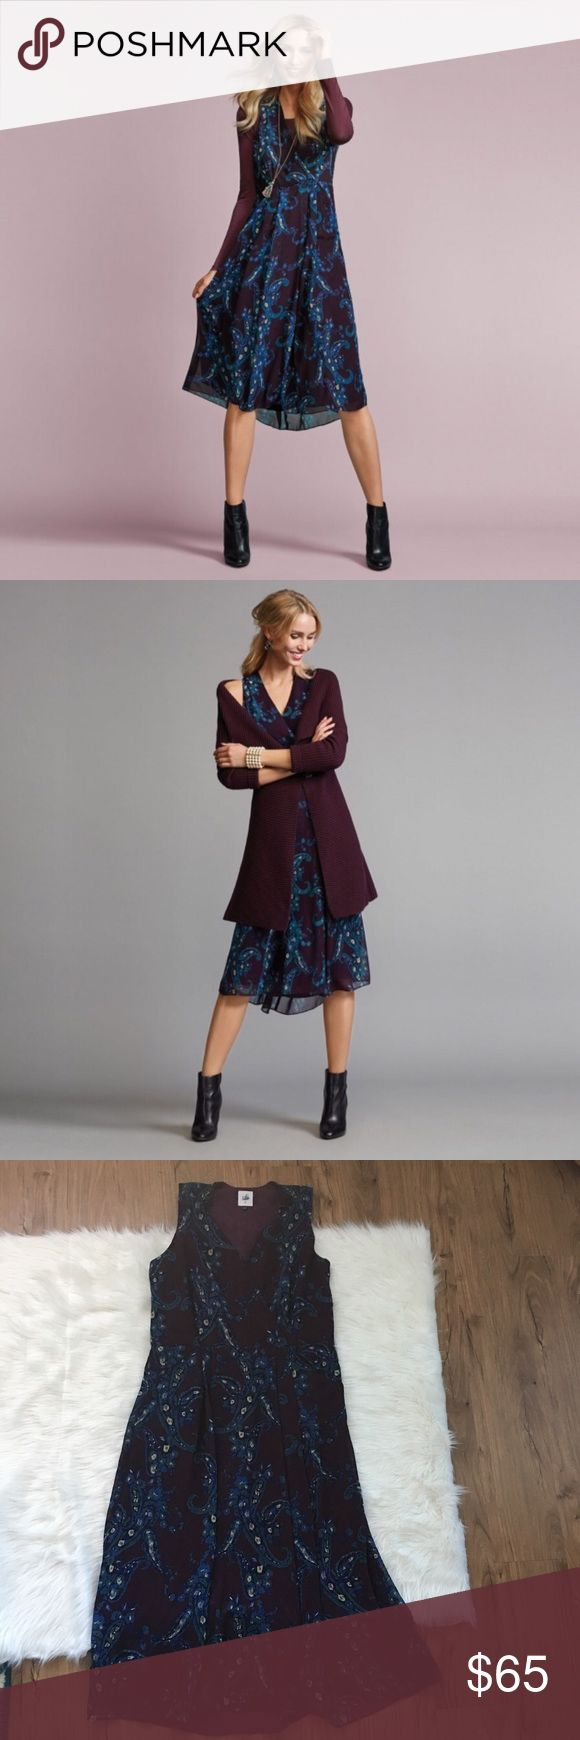 CAbi Fall 2017 Treasure Purple Blue Dress 3461 Tag has a cut as shown in photos. Inspired by a vintage '40s. True to size and fitted at the waist with a side zip, the deep V-neck elongates your frame, and the overlay is tacked down to stay put. Pockets (yes, pockets!) add a sense of whimsy while pleats offer a bit of volume, reinforcing the ethereal feel and flow of the fully-lined high-low hem.    Paisley floral pattern Midi length with high-low hem, side zip, empire waist, and pockets…